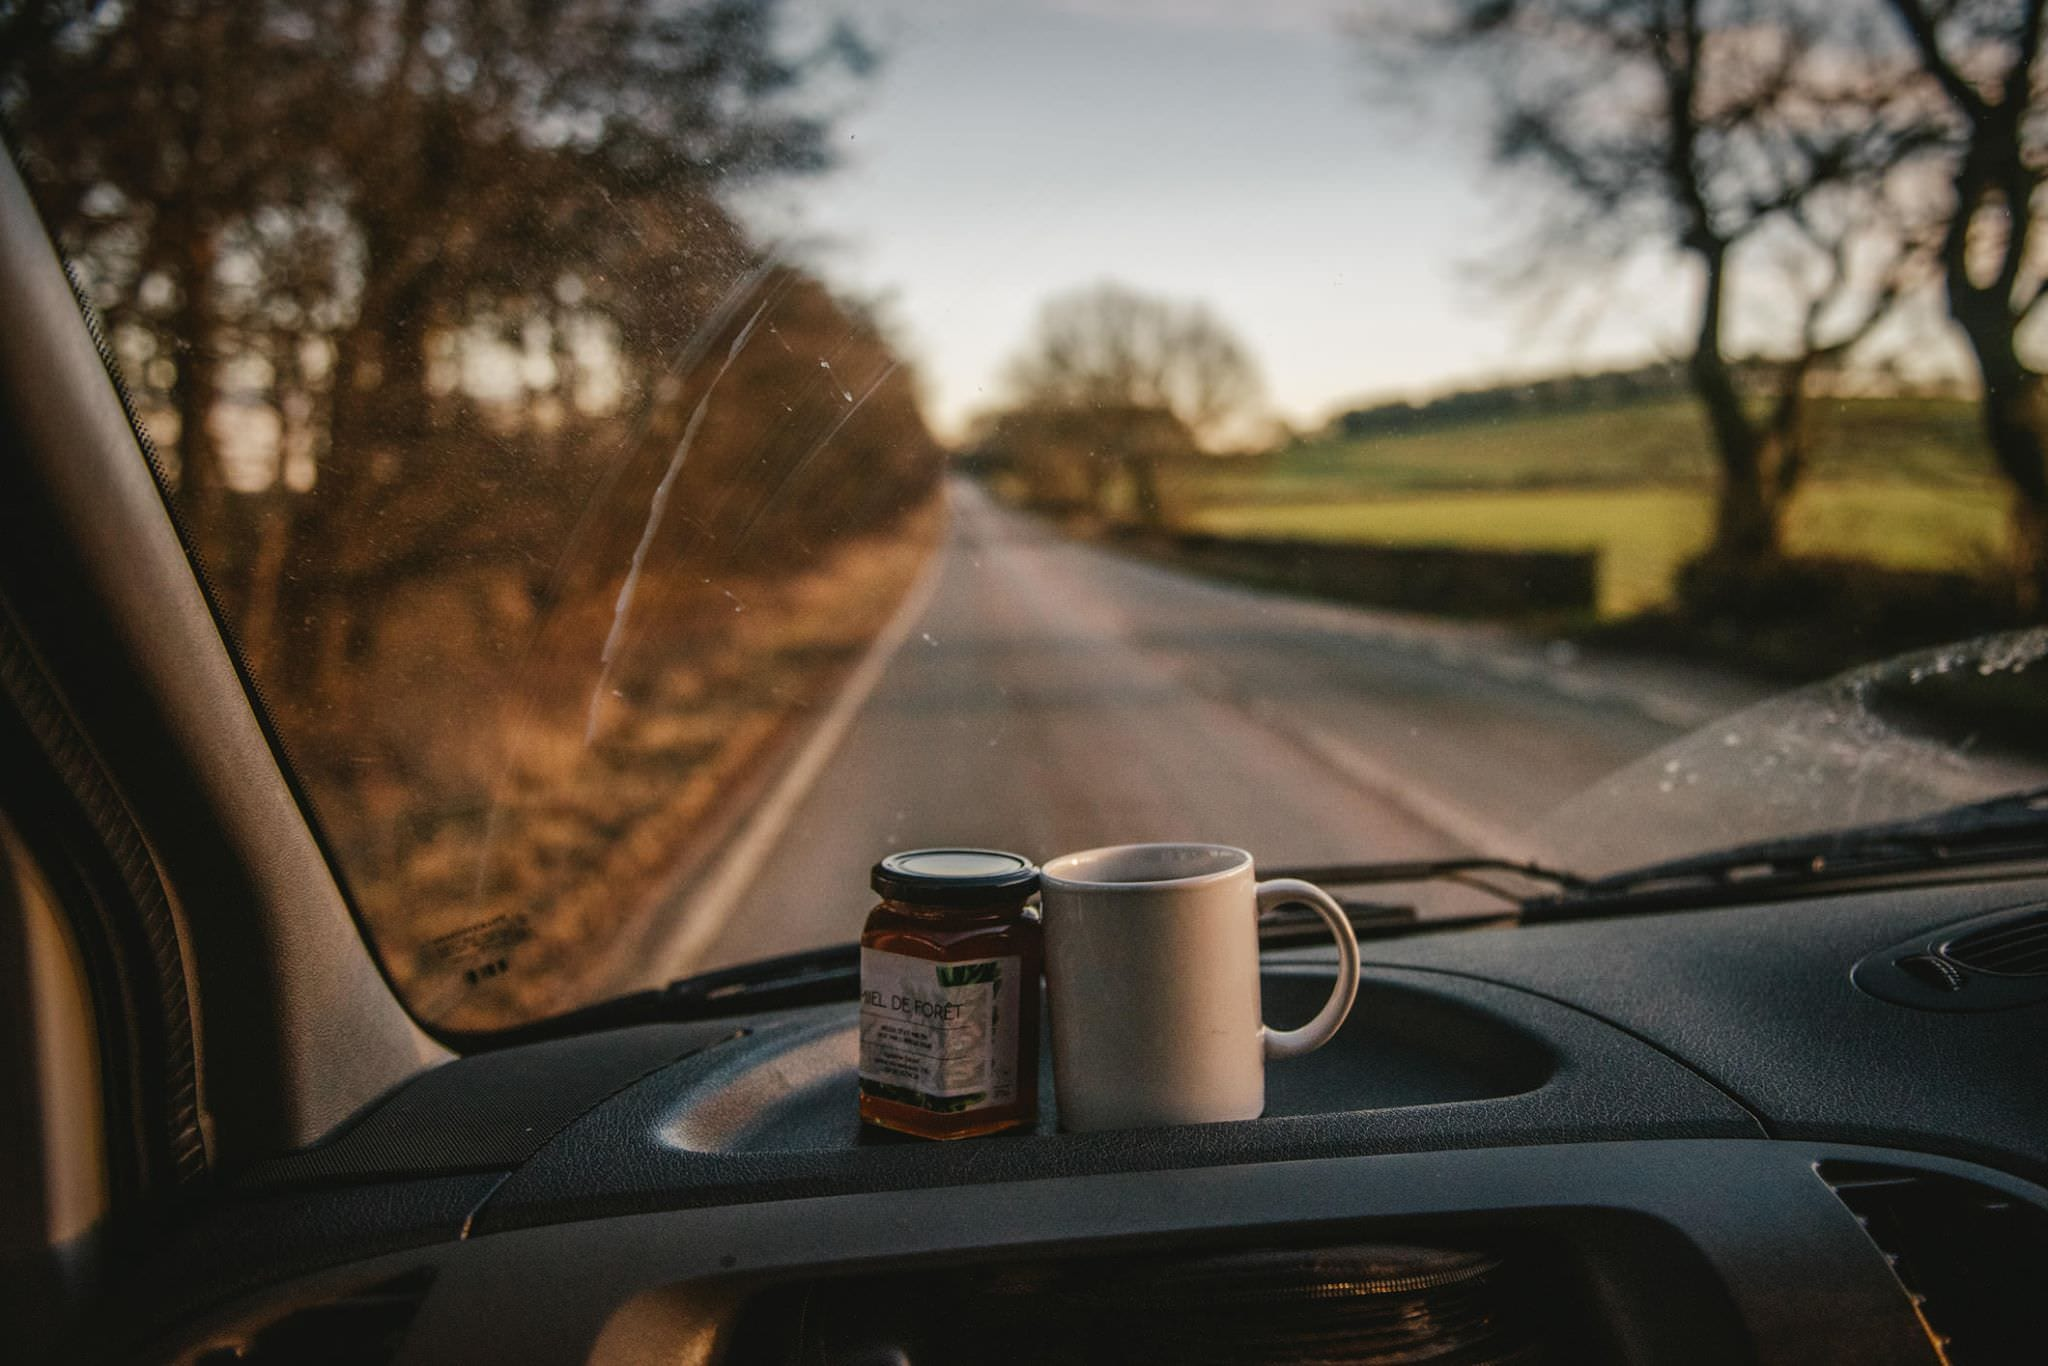 Tea and honey in a campervan on a roadtrip in Ireland